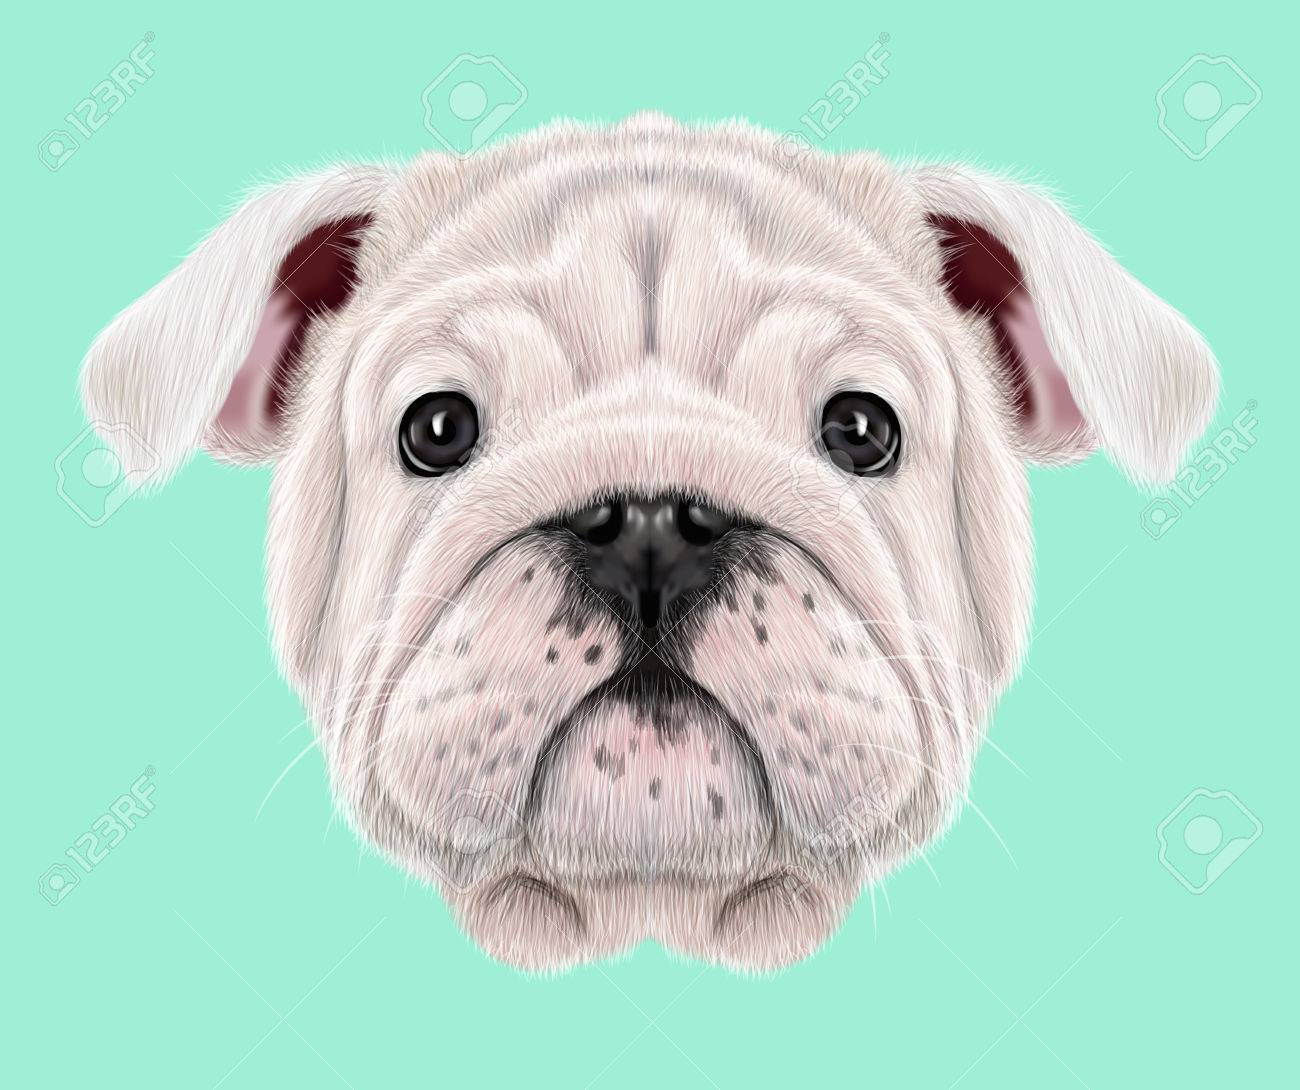 Illustrated Portrait Of English Bulldog Puppy Cute Fluffy White Stock Photo Picture And Royalty Free Image Image 75882510